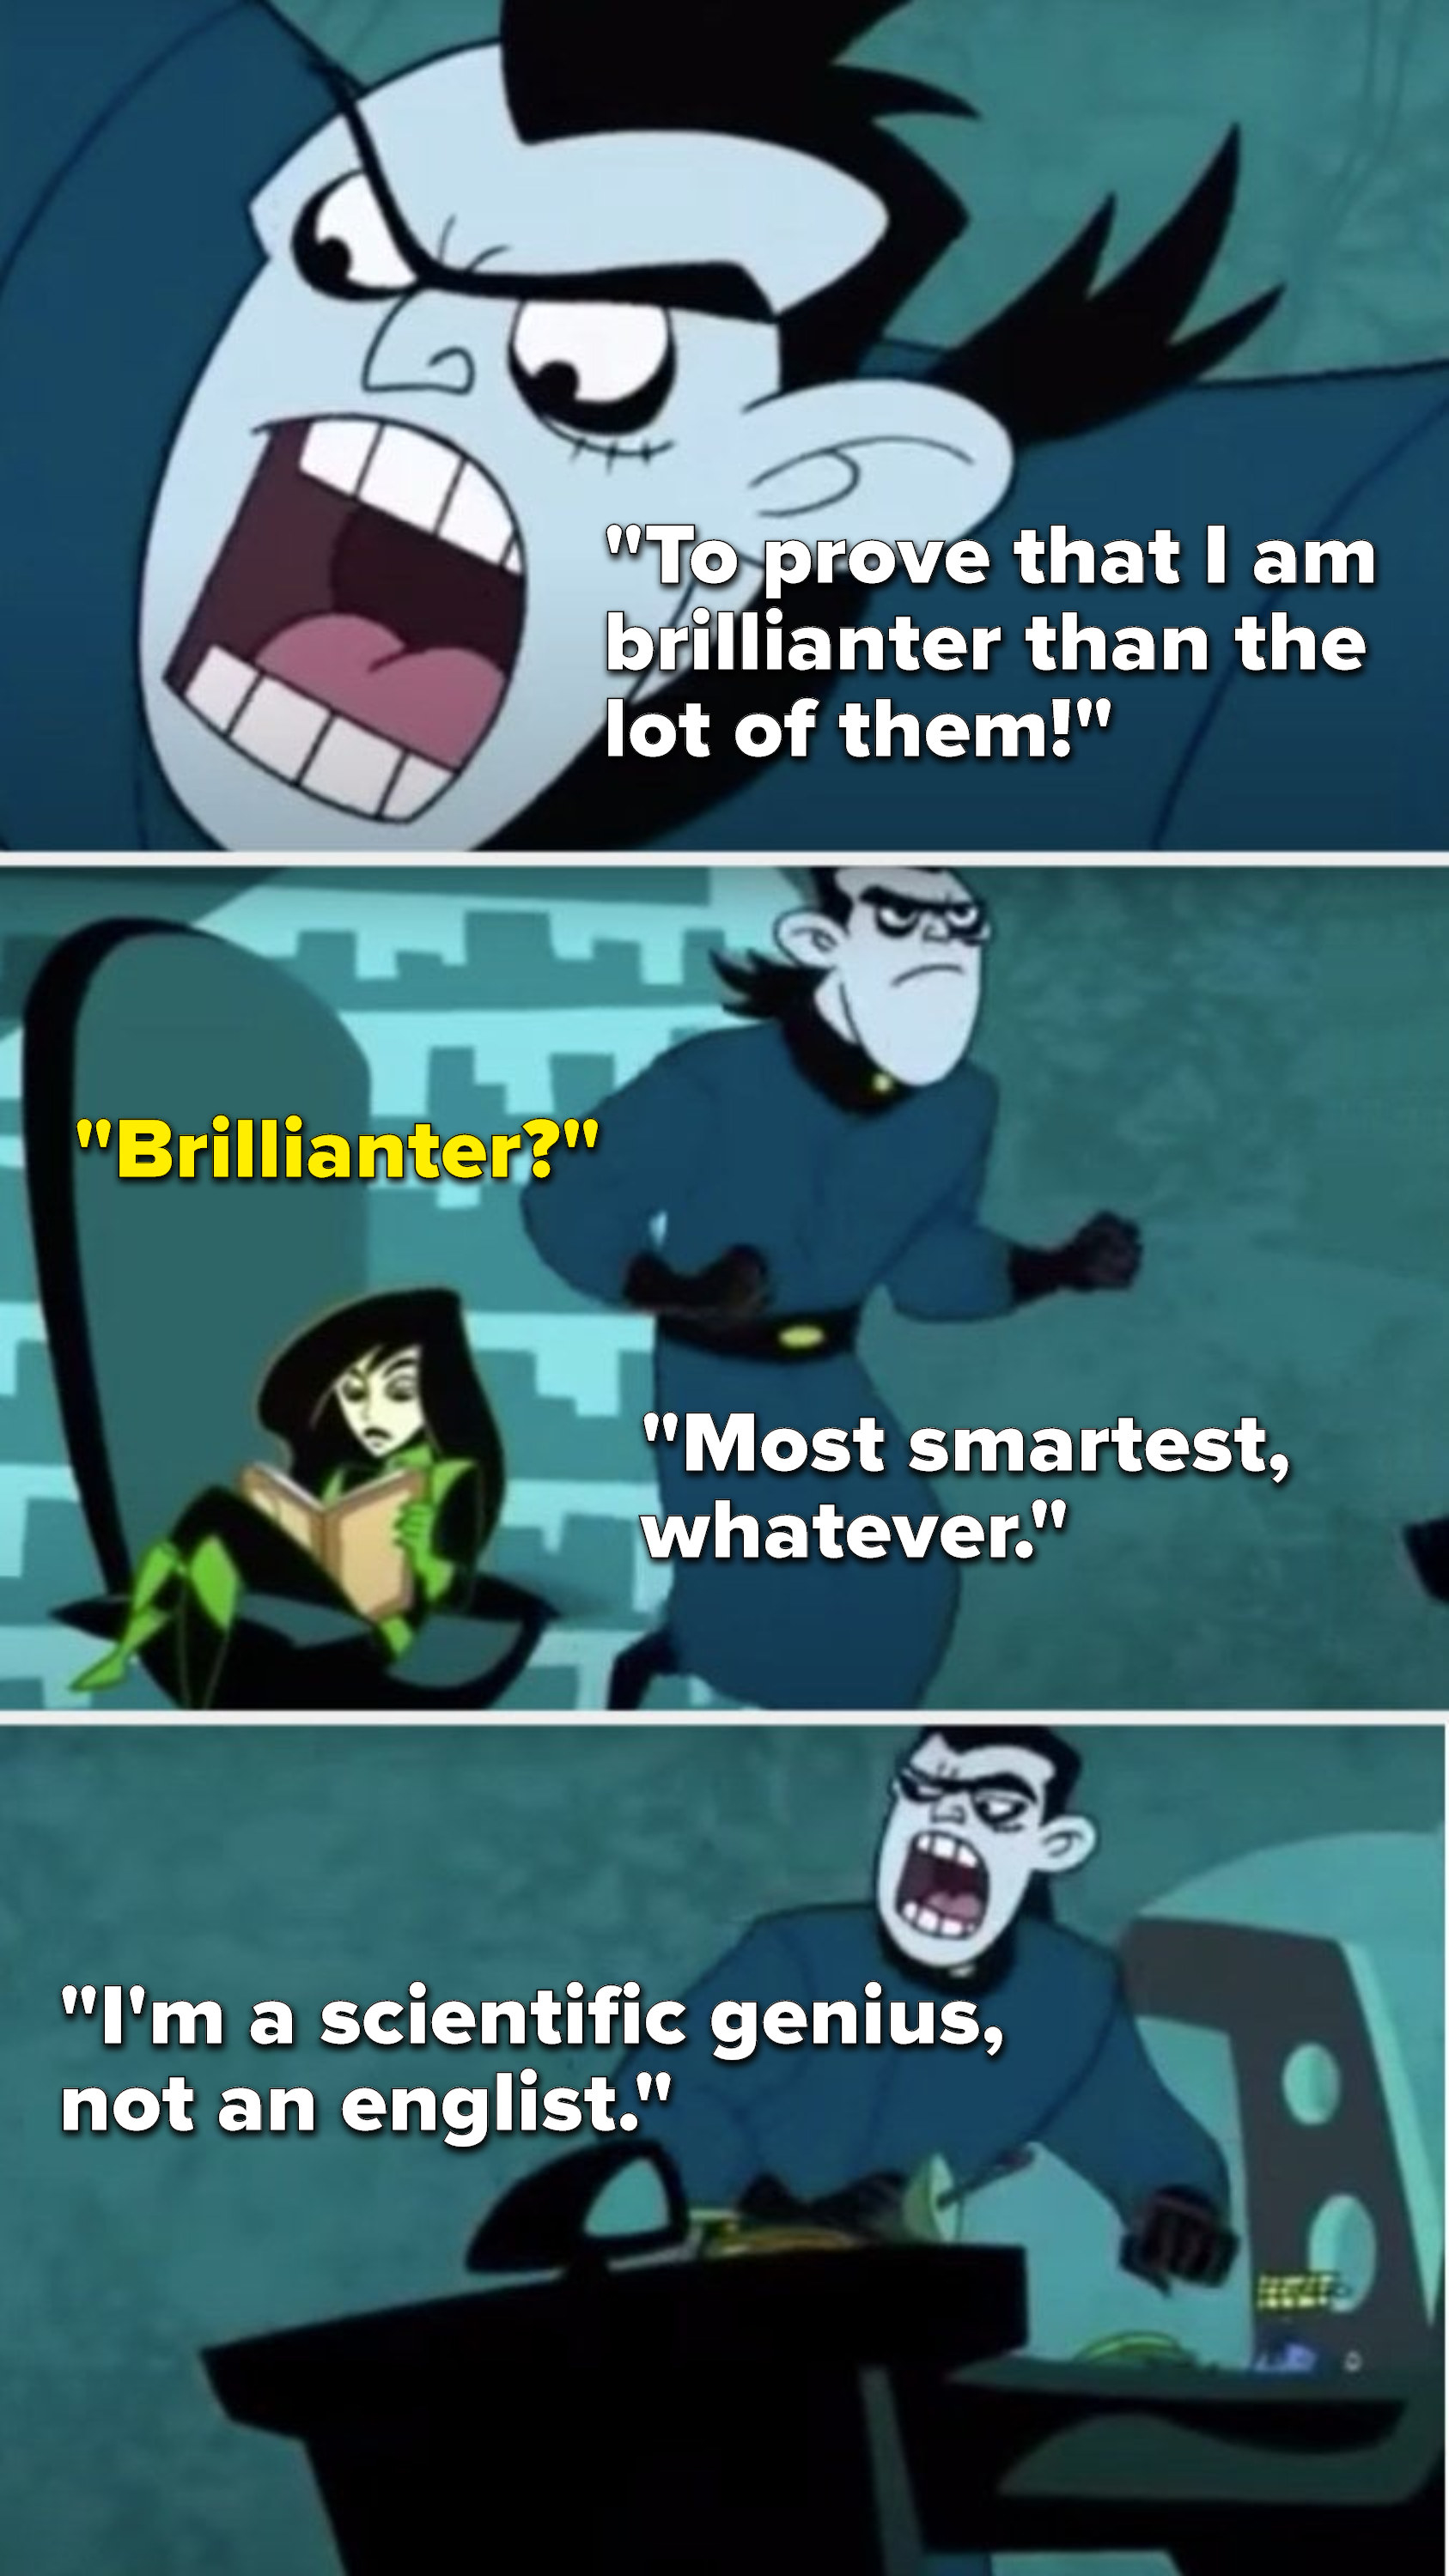 """Drakken says, """"To prove that I am brillianter than the lot of them,"""" Shego asks, """"Brillianter,"""" and Drakken says, """"Most smartest, whatever, I'm a scientific genius, not an englist"""""""